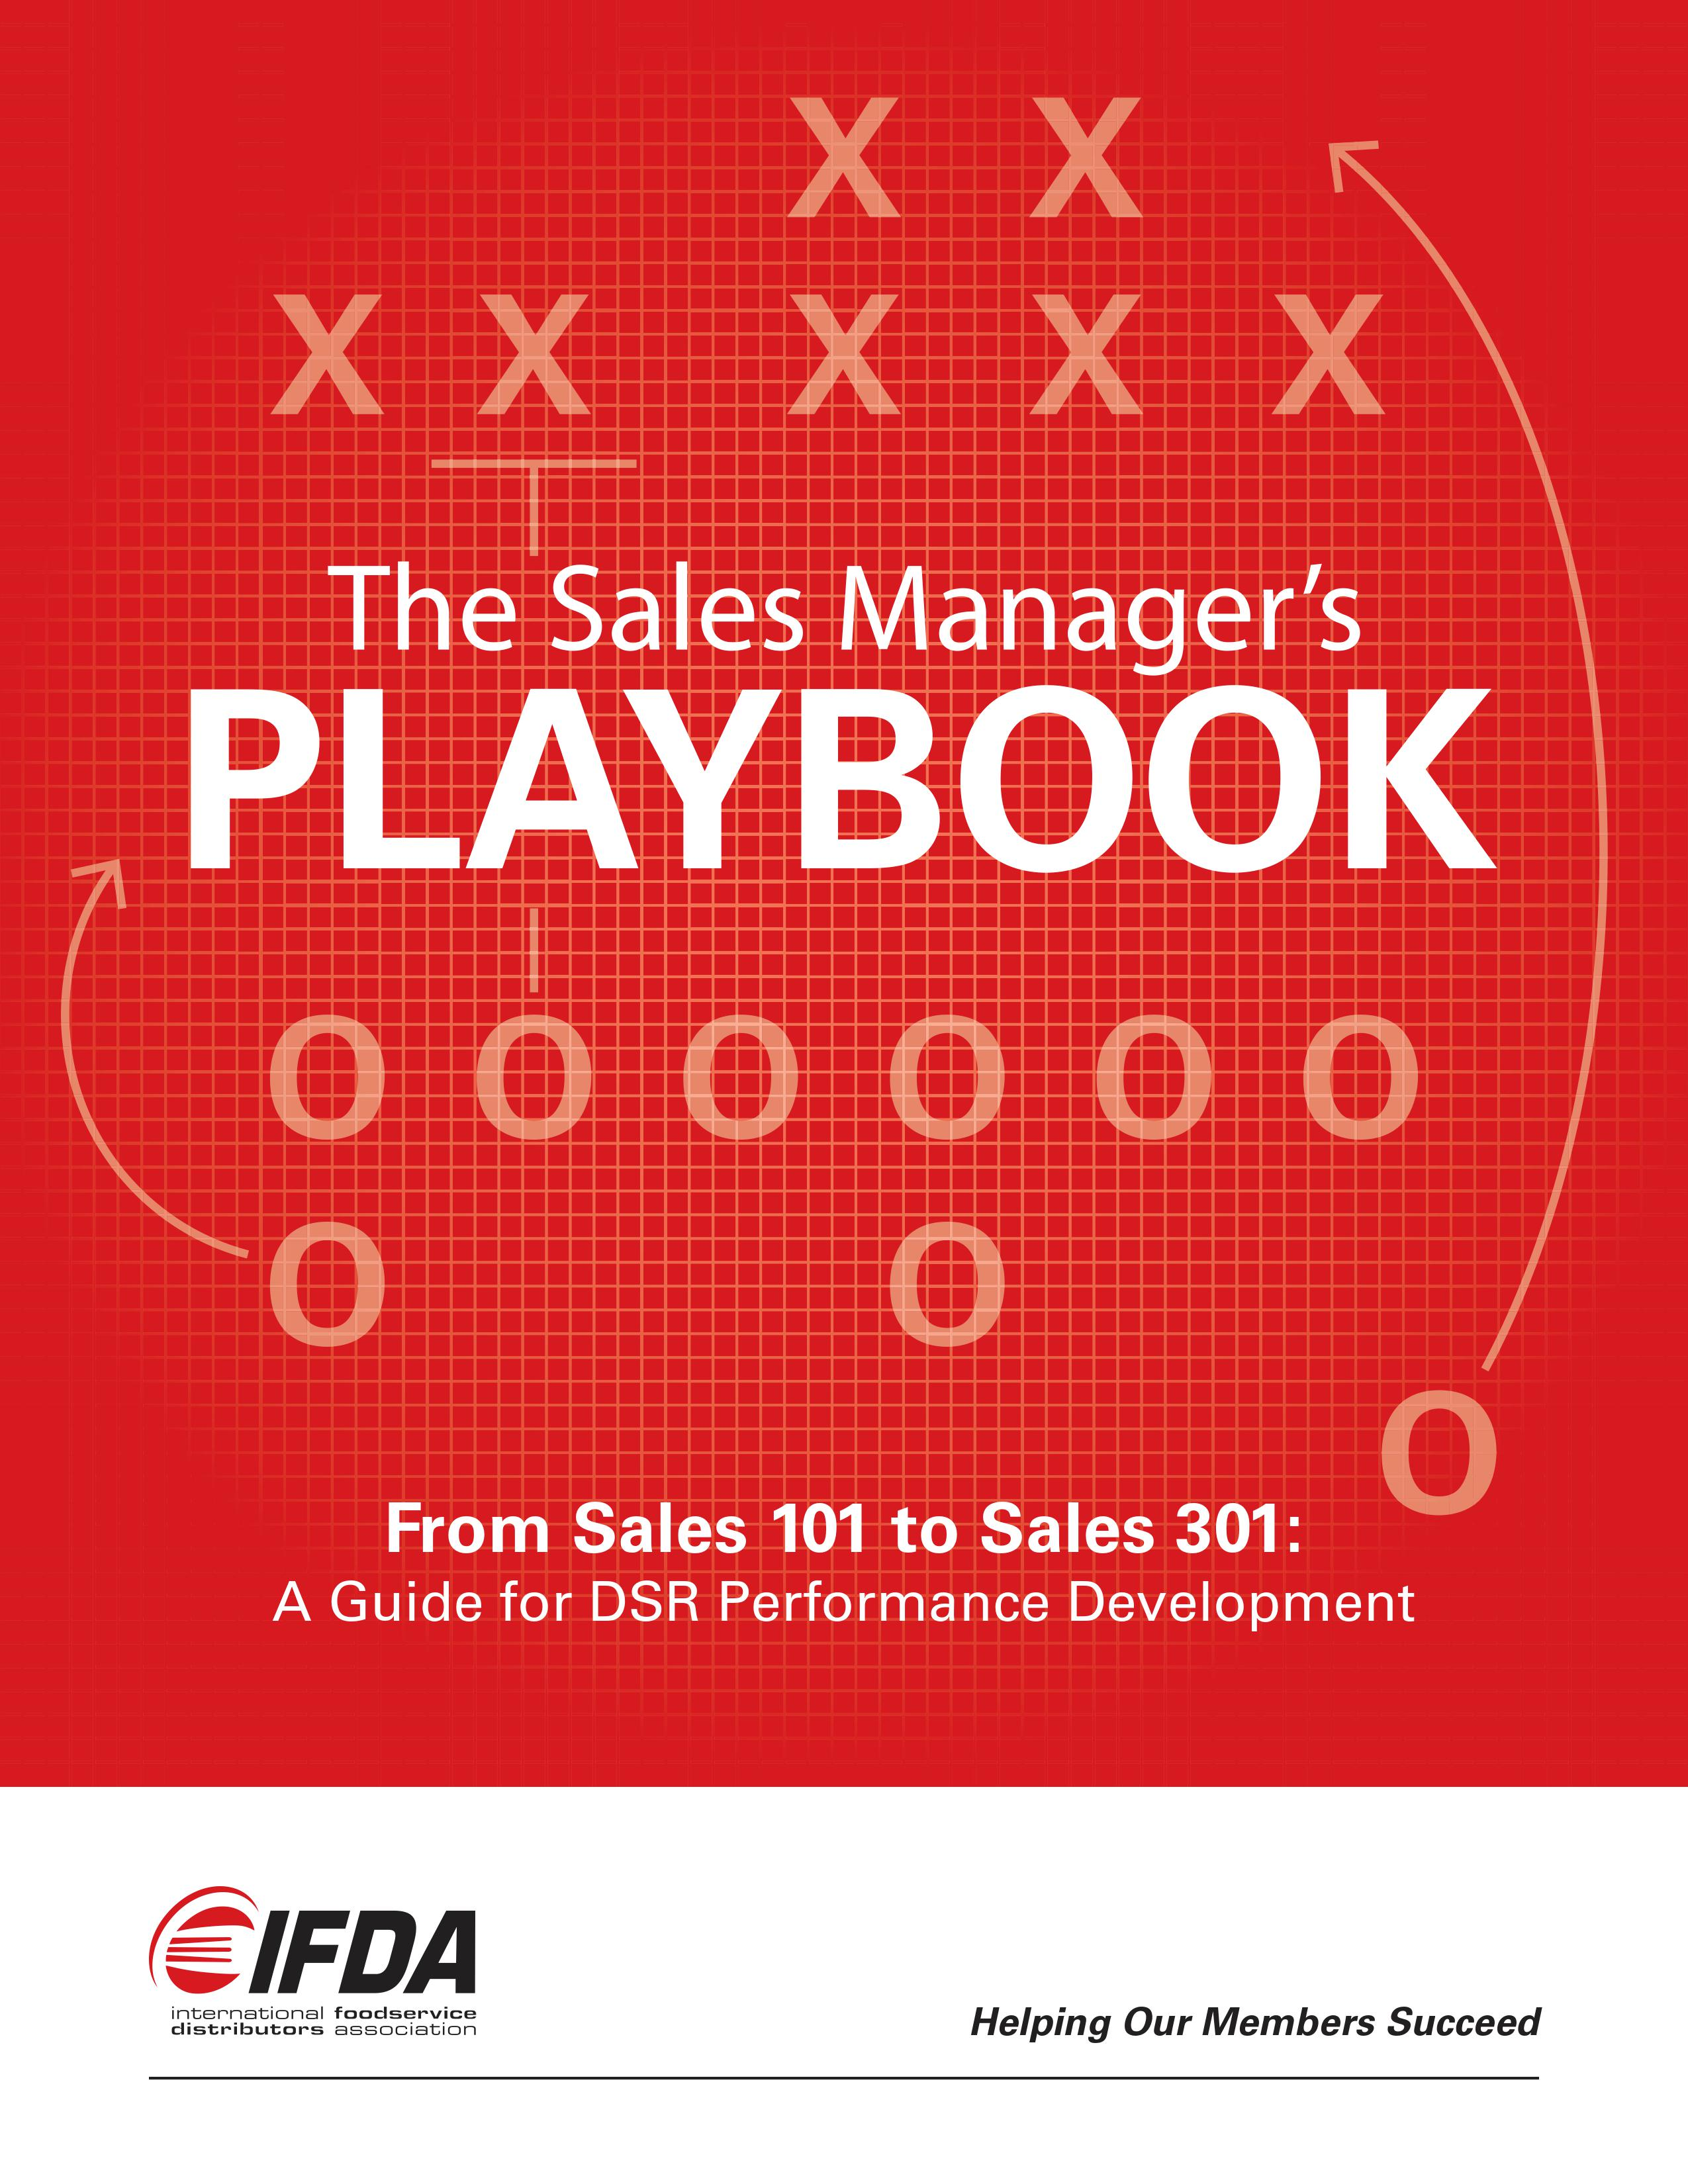 Thumbnail of The Sales Manager's Playbook